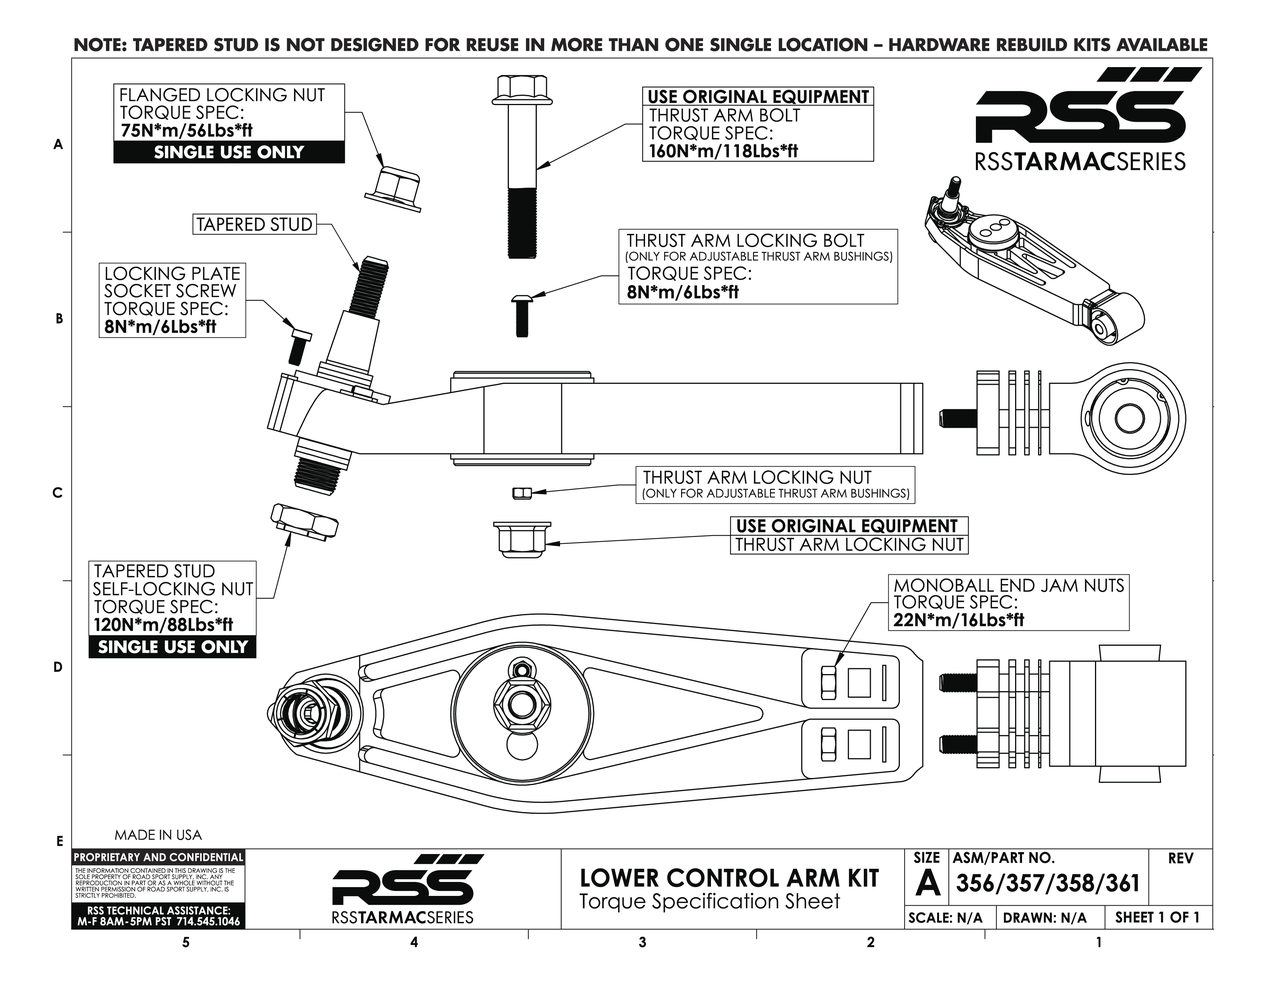 """#357 RSS TARMAC SERIES 2-PIECE COMPLETE LOWER CONTROL ARM KIT - Rear Axle (Pair of 2). Fits rear axle (986, 996, 987, 997 All, 981/982/718). Includes: Non Adjustable/Non-Hydraulic Replacement Thrust Arm Bushings, 1mm/2mm/3mm/7mm Shims, Spherical Monoball Ends.** Note: 987, 981, Models may require additional Rear Litronic or Torque Vector Sensor Brackets.   RSS Tarmac Series Motorsport Lower Control Arms are specifically engineered for use on lowered vehicles that have reduced travel struts/dampers If you need assistance in identifying your suspension type please contact us. For specific fitment information refer to the """"Chassis Fitment Guide and Lower Control Arm Fitment Notes"""" (See Images Below).  The RSS Tarmac Series – Motorsports Control Arms are designed for the Porsche driver who demands the absolute maximum in precision handling, feedback and control from their chassis. This system has been specially engineered to provide unmatched performance, quality, strength and serviceability. RSS Tarmac Series Control Arms address the performance related shortcomings of the OEM rubber mounted suspension components which were designed to reduce road noise and vibration for everyday street use. The use of rubber injected moldings in mounting components such as the control arms, thrust arms, upper links and toe arms is a compromise in regards to maximum suspension performance. The soft rubber deflects under suspension load which in turn causes unwanted movement (deflection) between the suspension and chassis. Data also shows that temporary changes in spring rates can occur as well. These movements and changes result in unnecessary corrections and inputs from the driver.  FEATURES & BENEFITS • Completely Serviceable: For the extreme, repetitive track day enthusiast or racer, our high strength steel alloy spherical bearings (with a friction reducing, longevity increasing Teflon liner) can be replaced unlike the motorsports arms, in which case a new set of arms will need to b"""